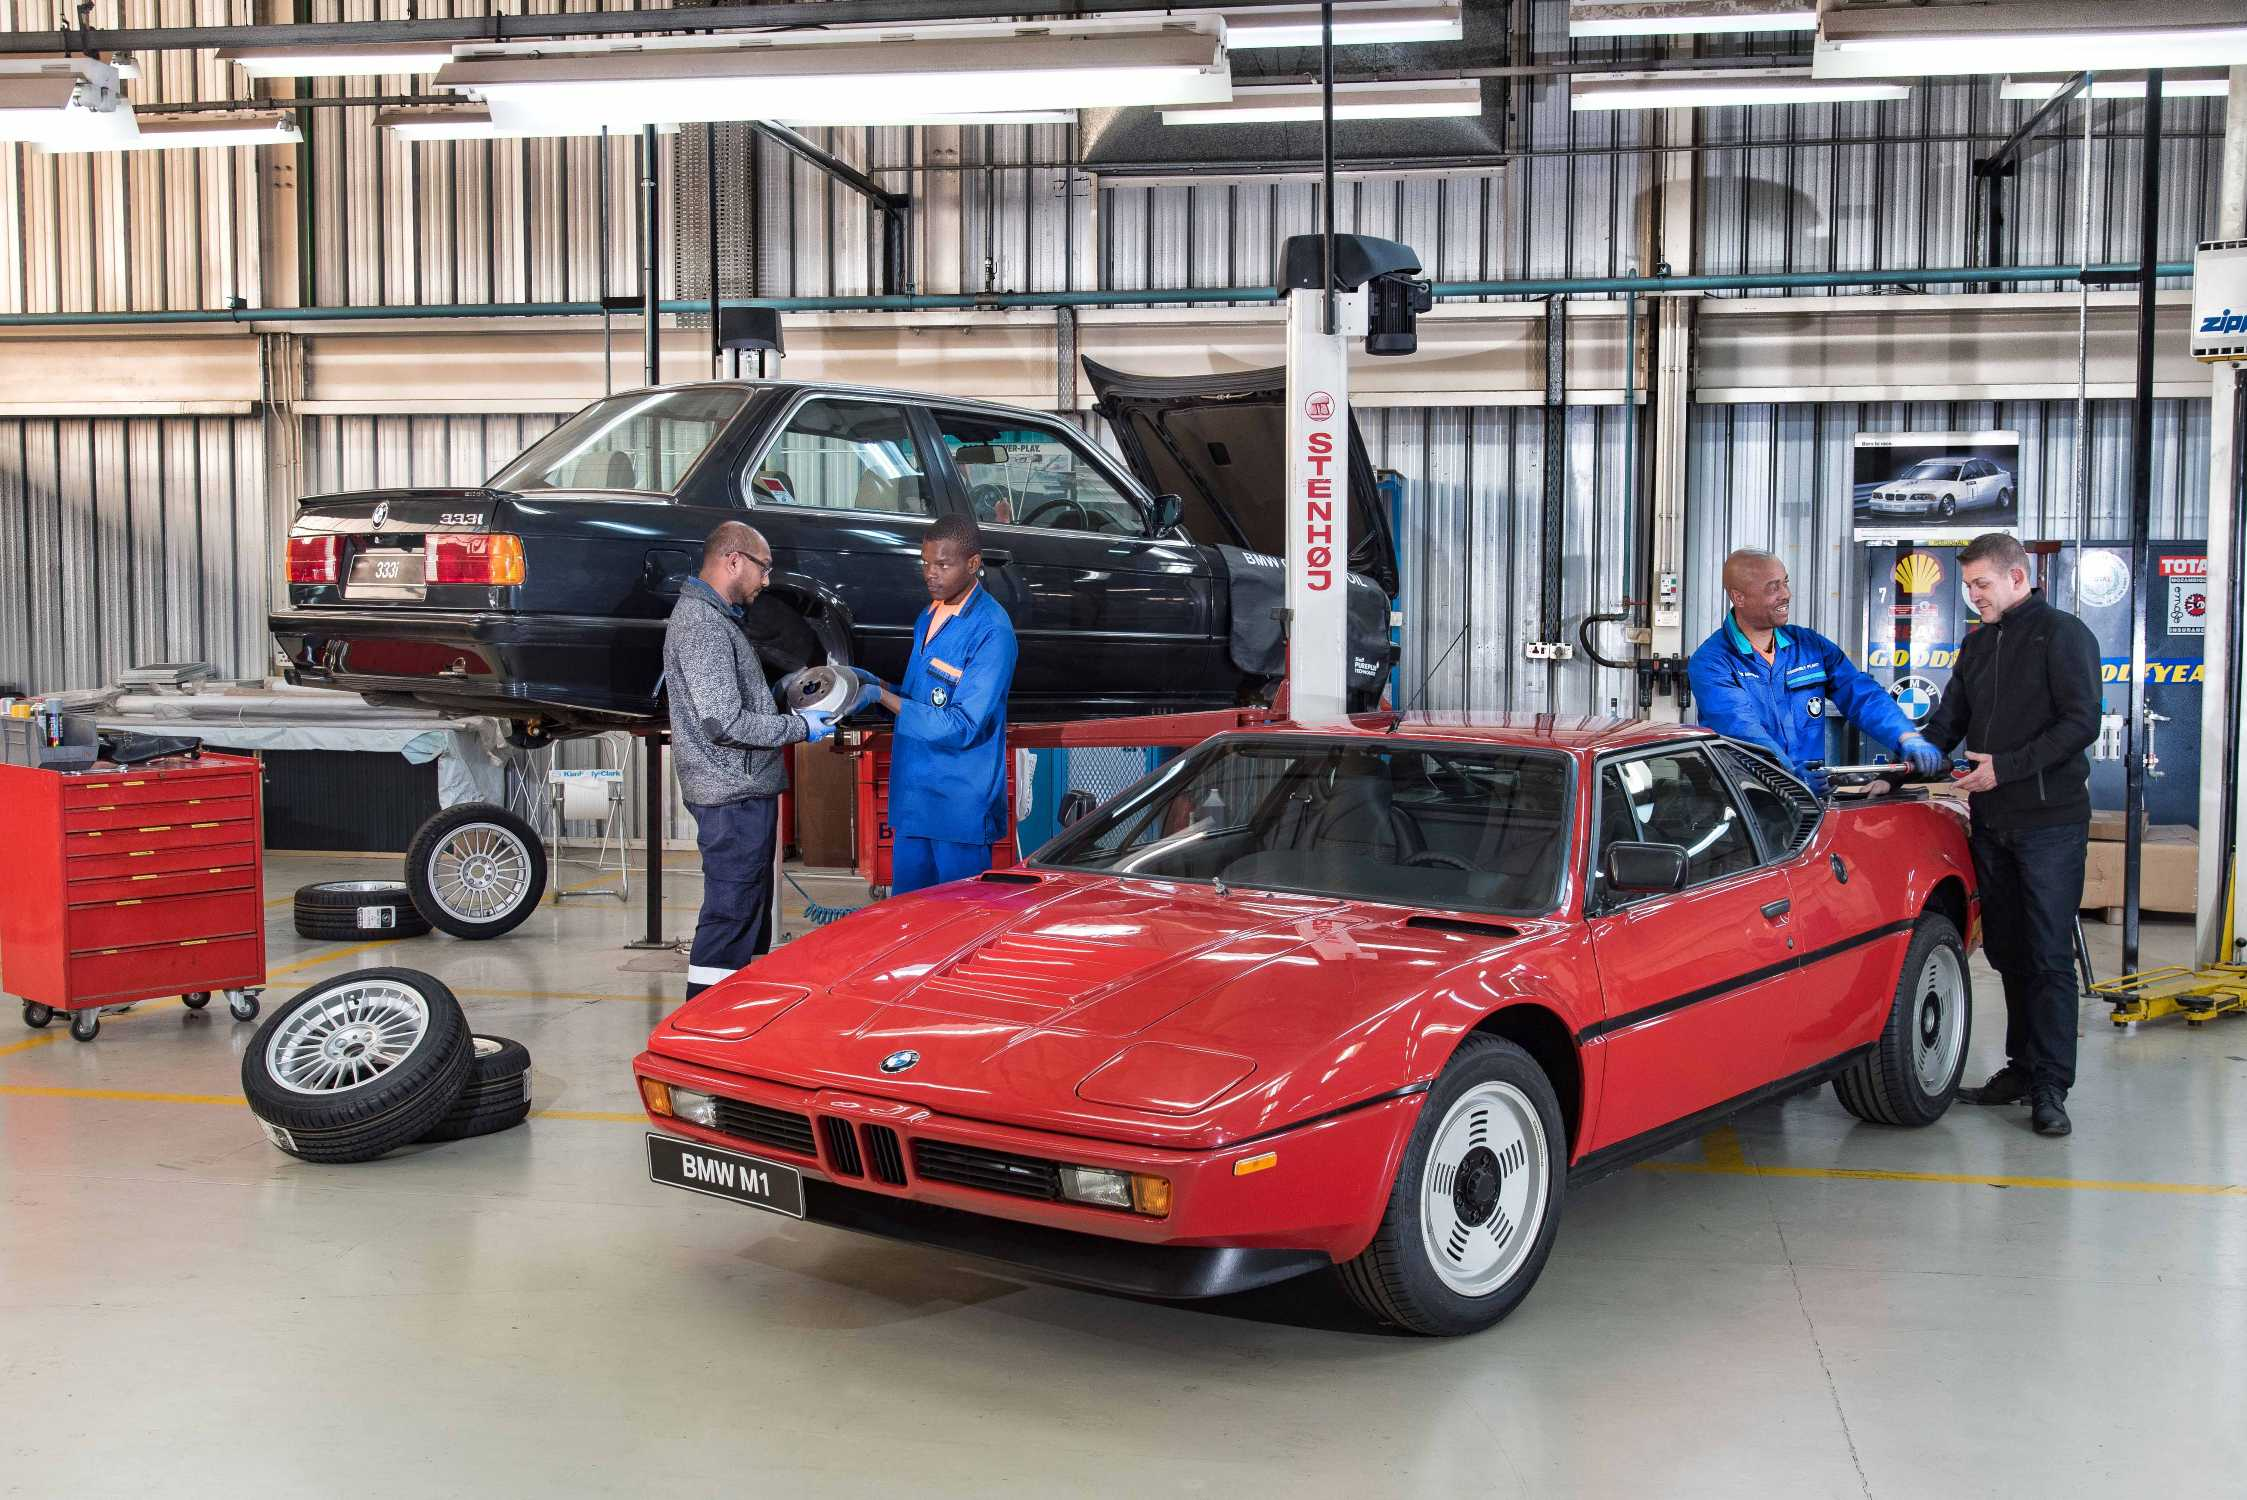 Bmw South Africa Refurbishes Its Classic Cars The Legendary Bmw